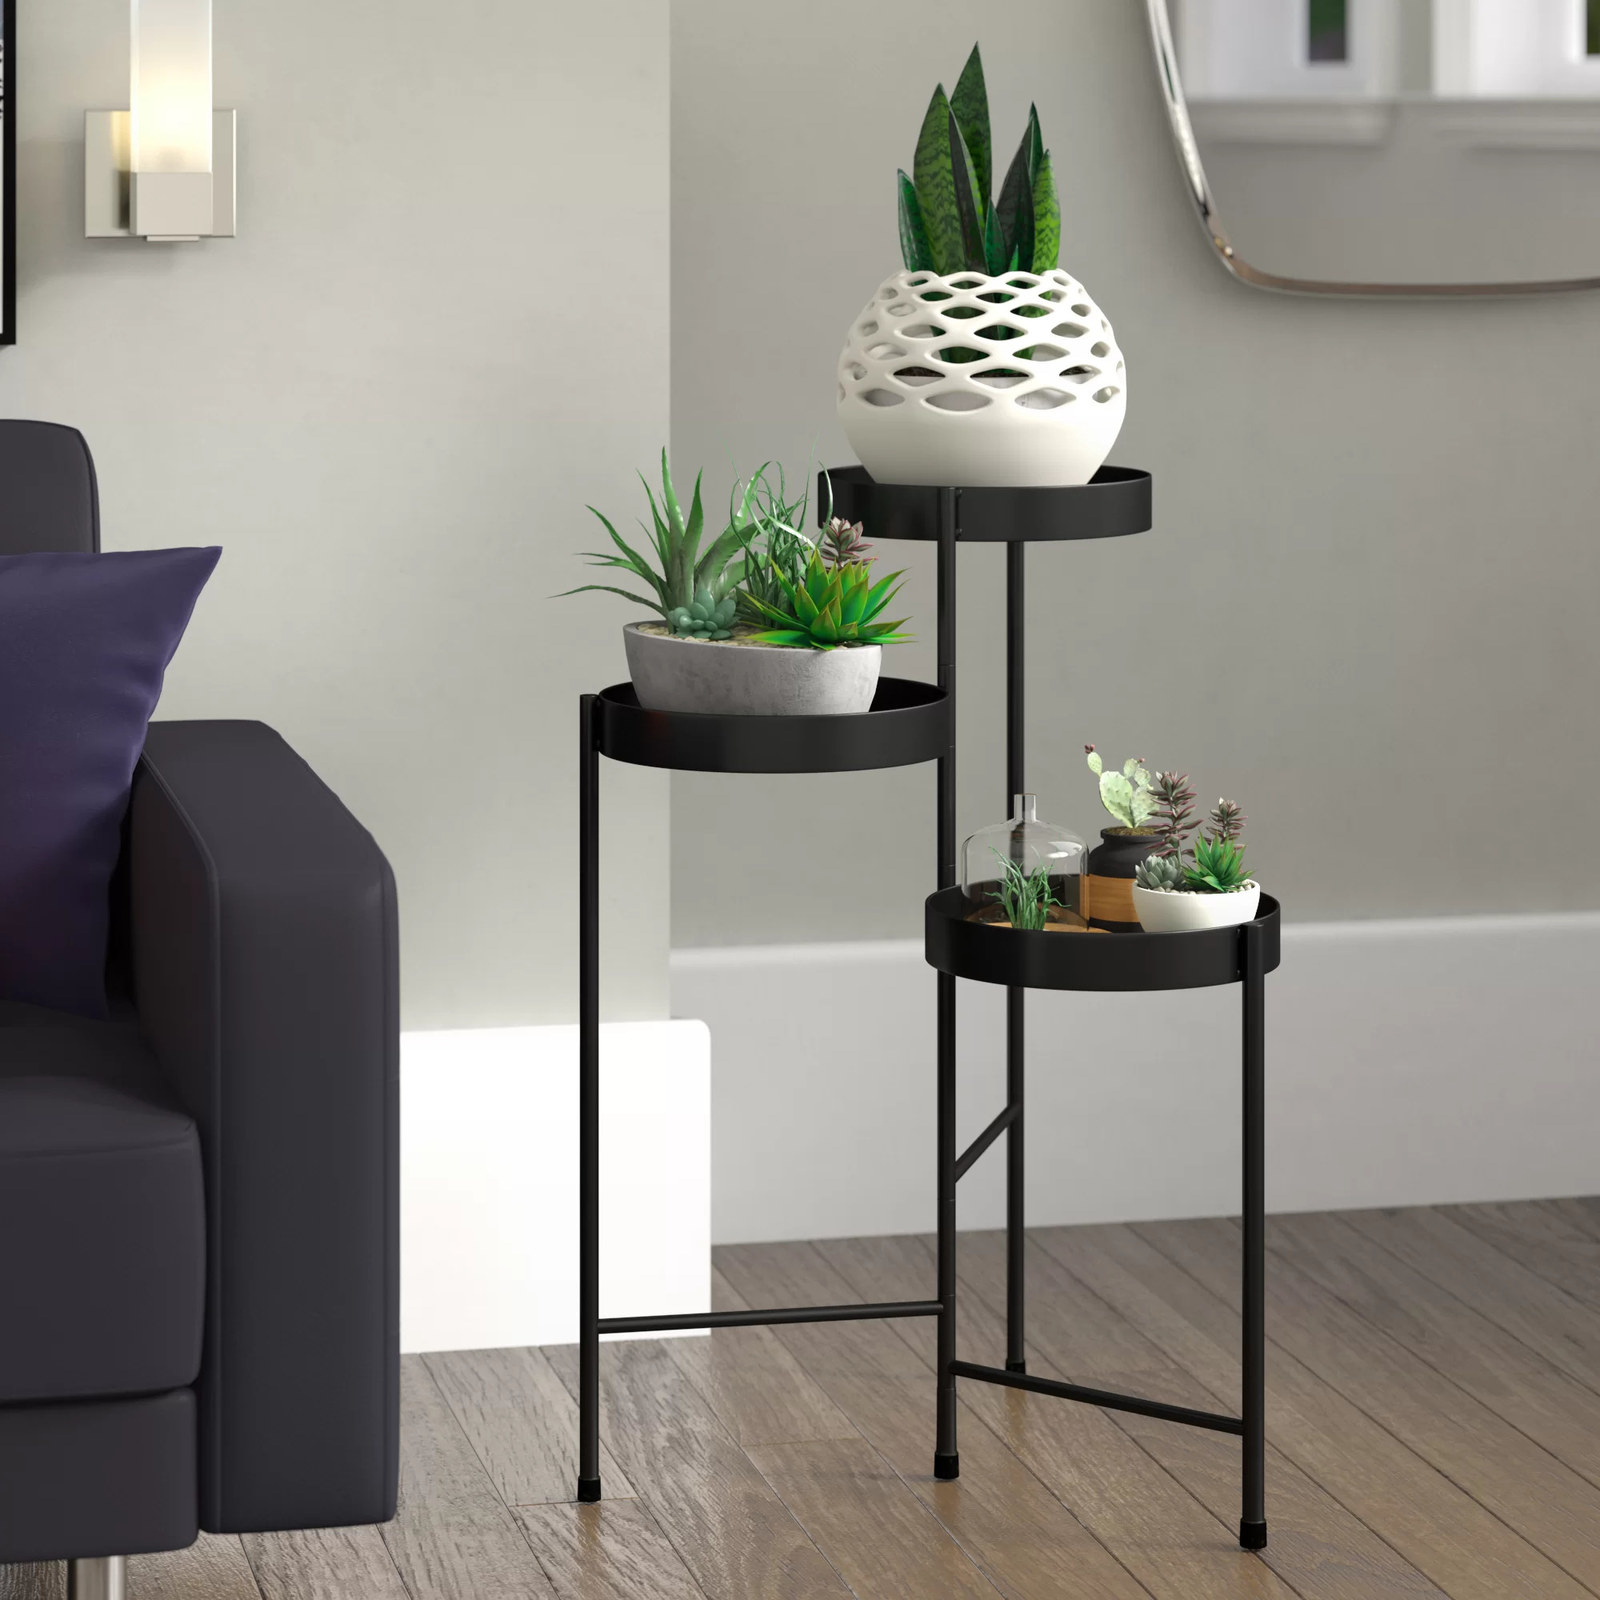 Three-tiered plant stand in black